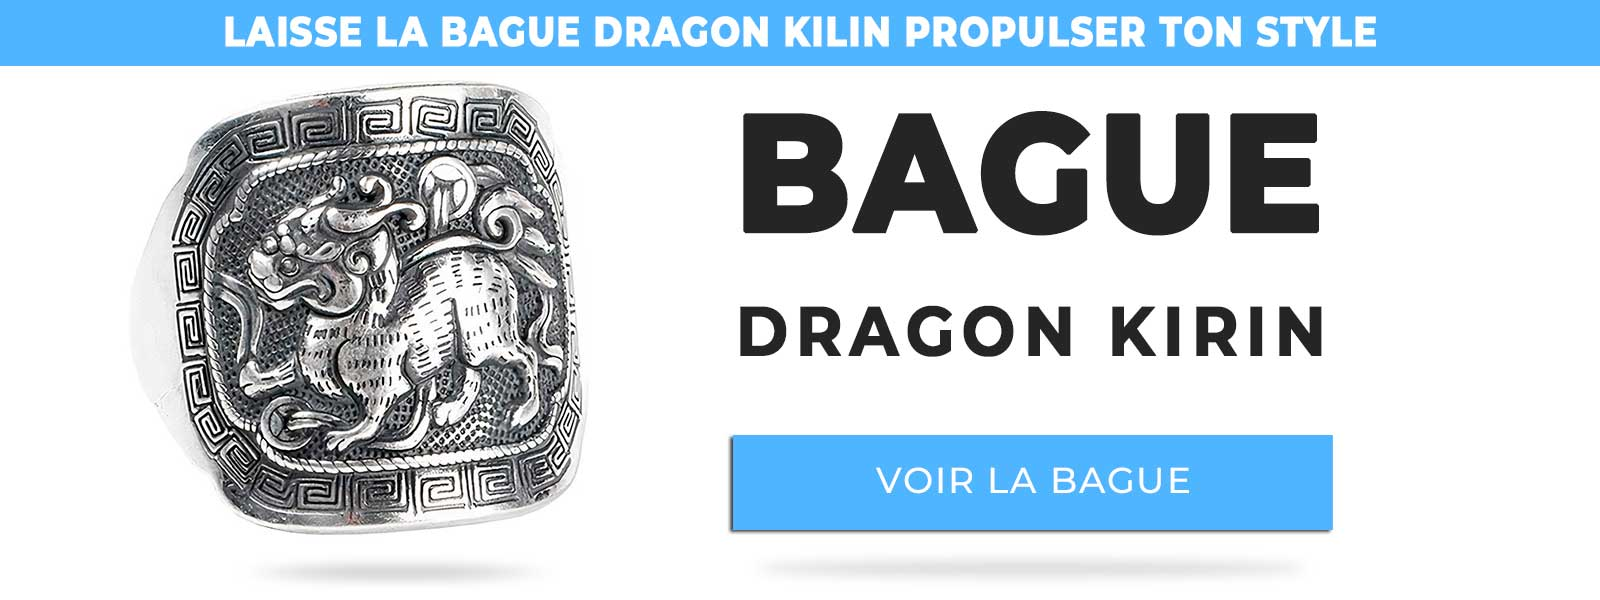 Bague dragon qilin